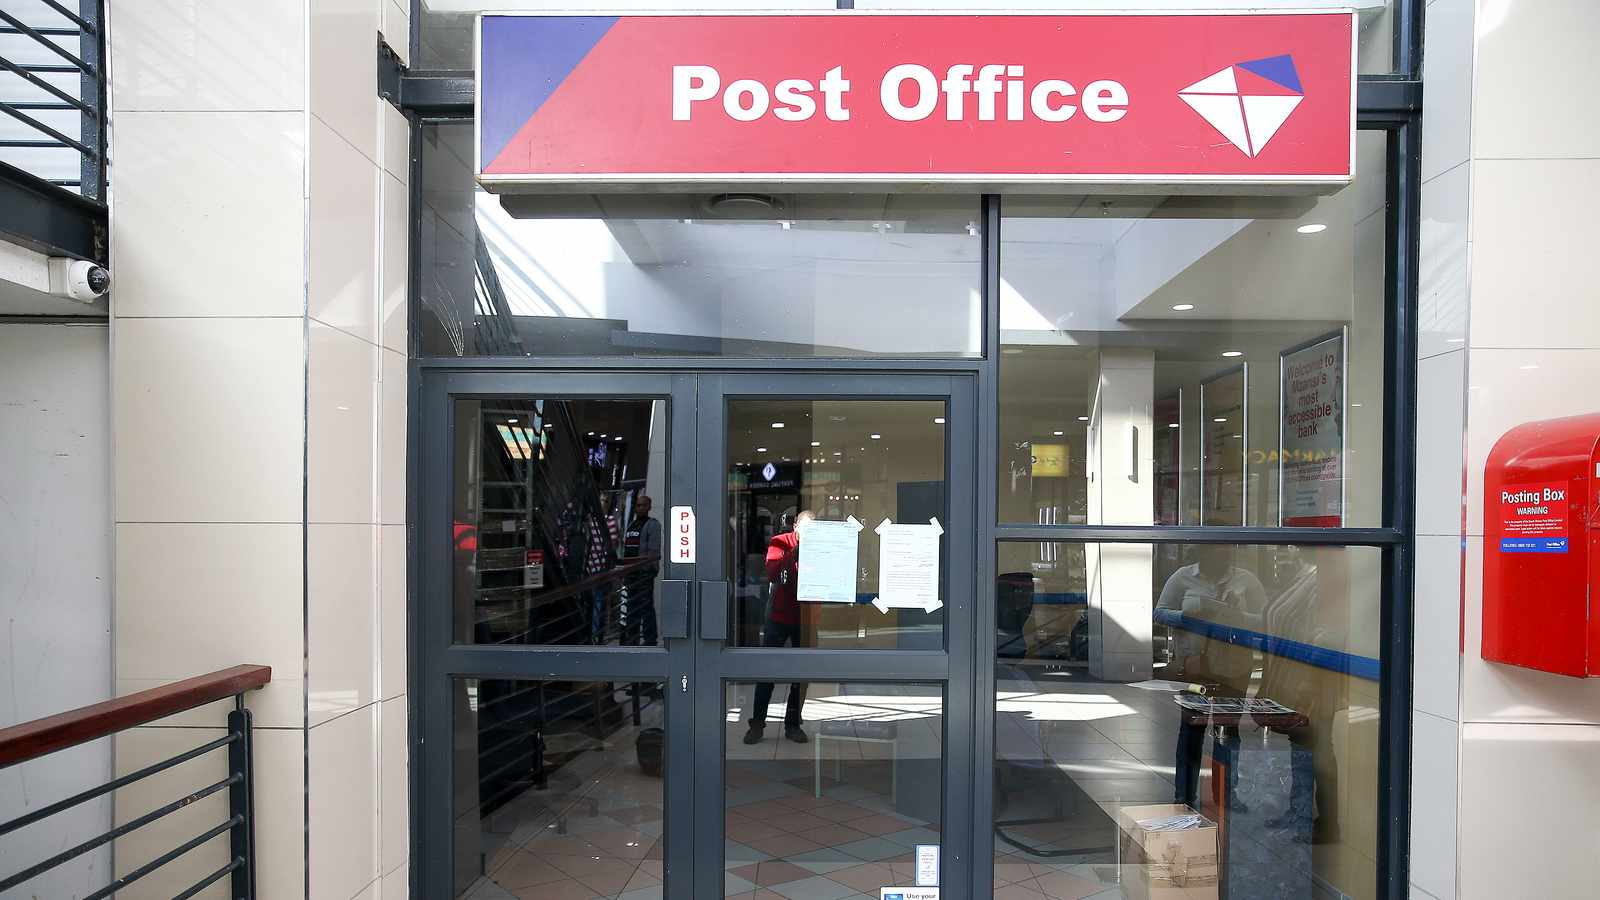 SA Post Office issues warning against parcel delivery scam